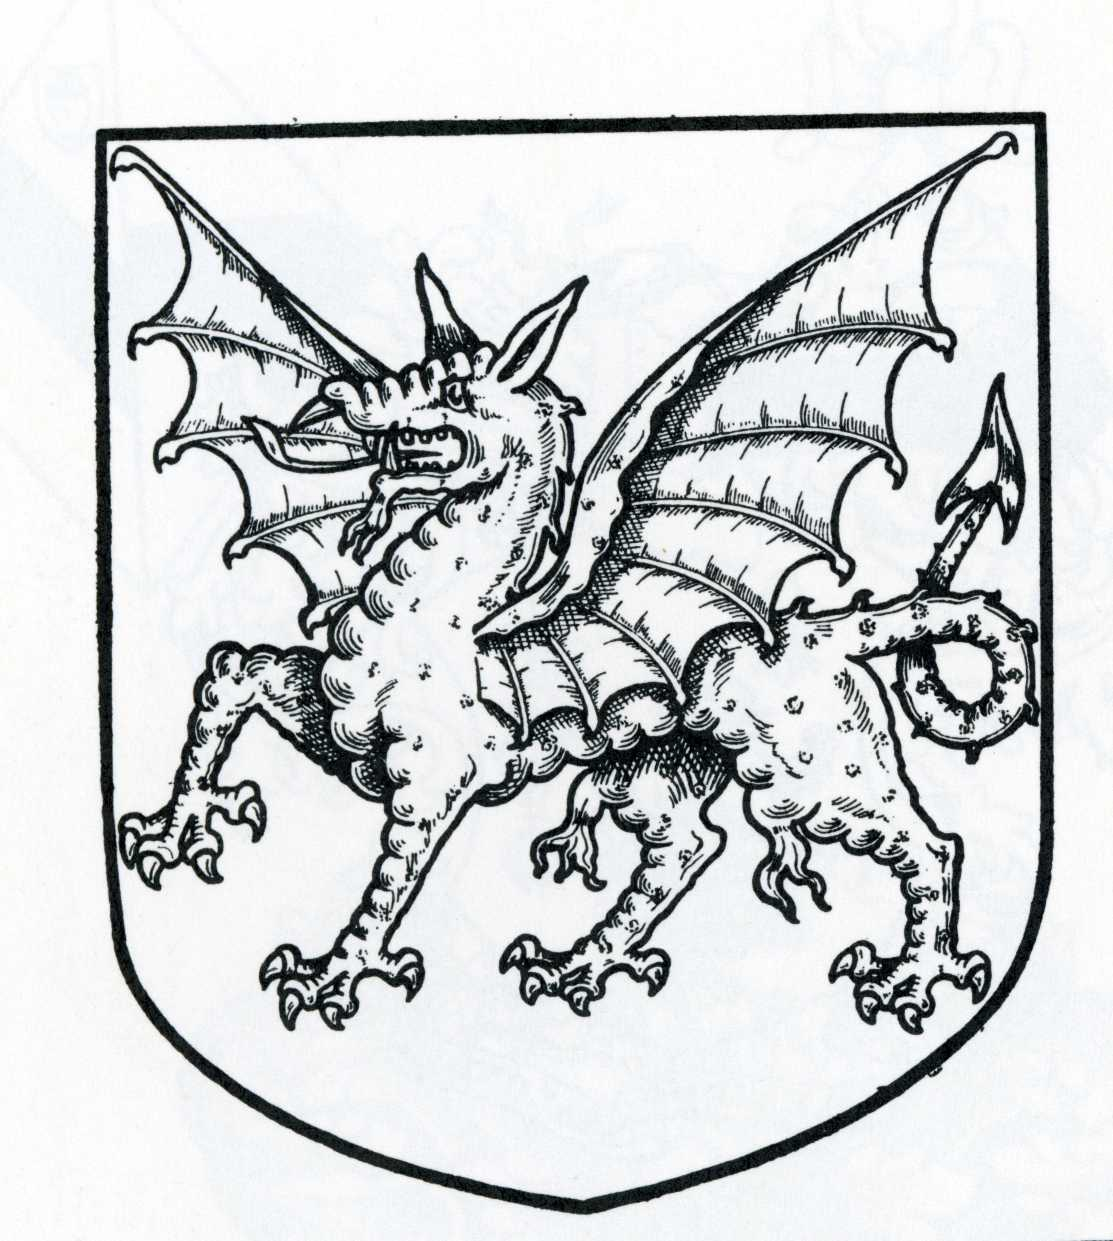 The code coloring book elevation church